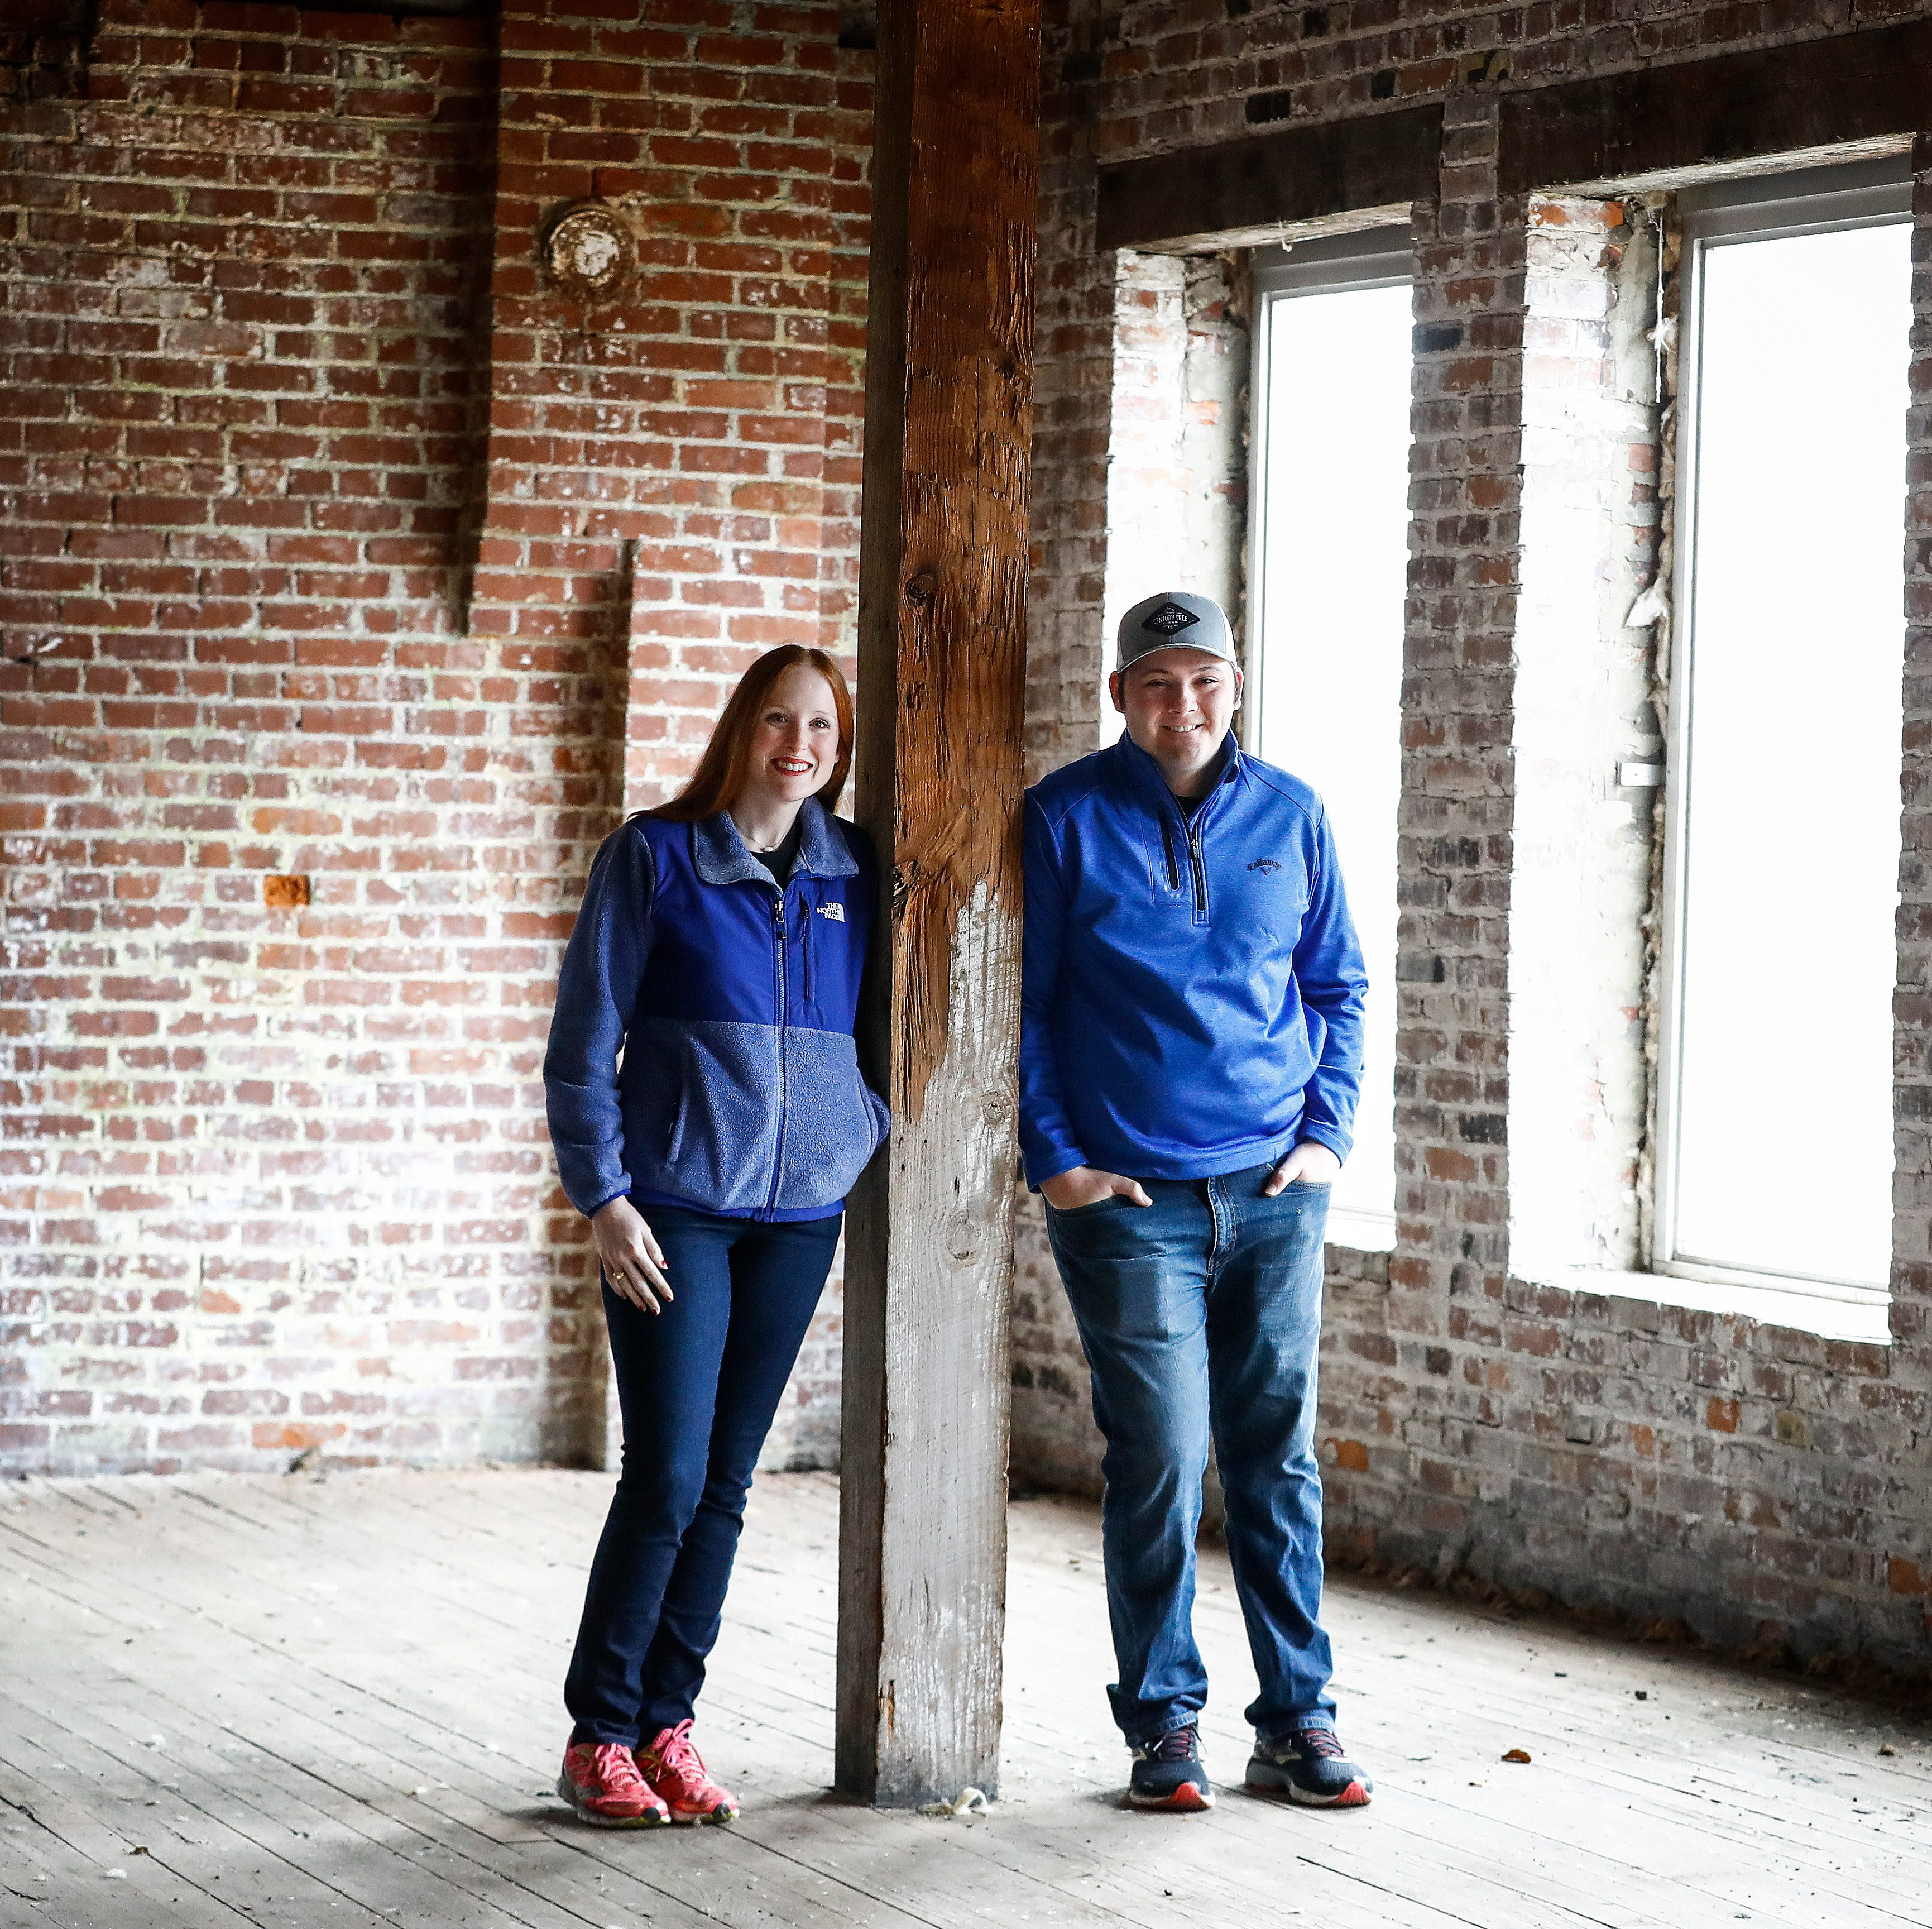 Cidermakers to bring experimental spirit to new Downtown Memphis taproom